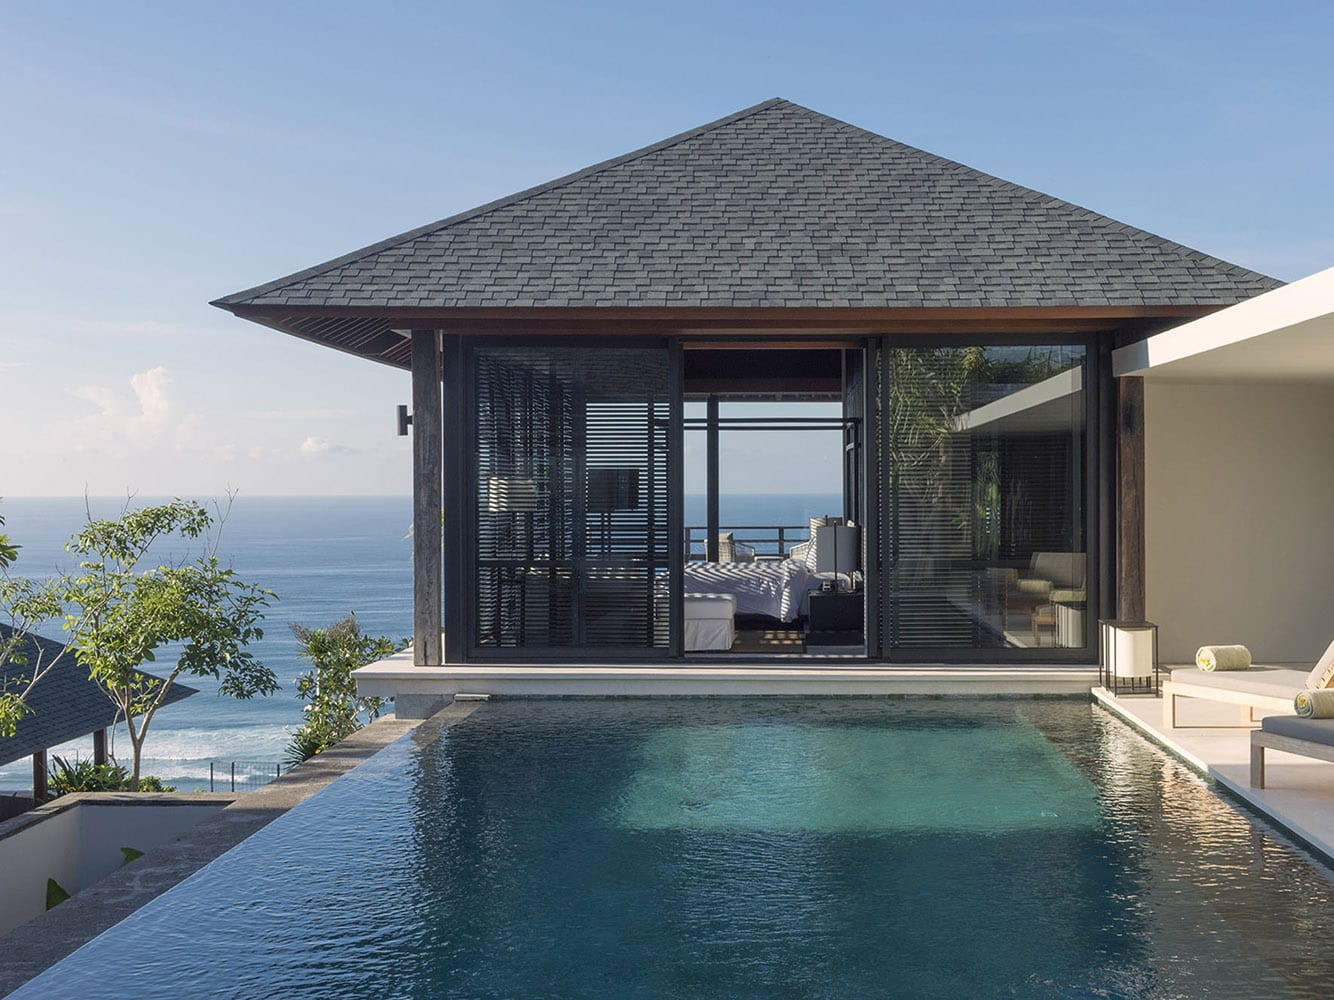 Villa Hamsa, Sohamsa Ocean Estate, The Bukit, Bali, Indonesia